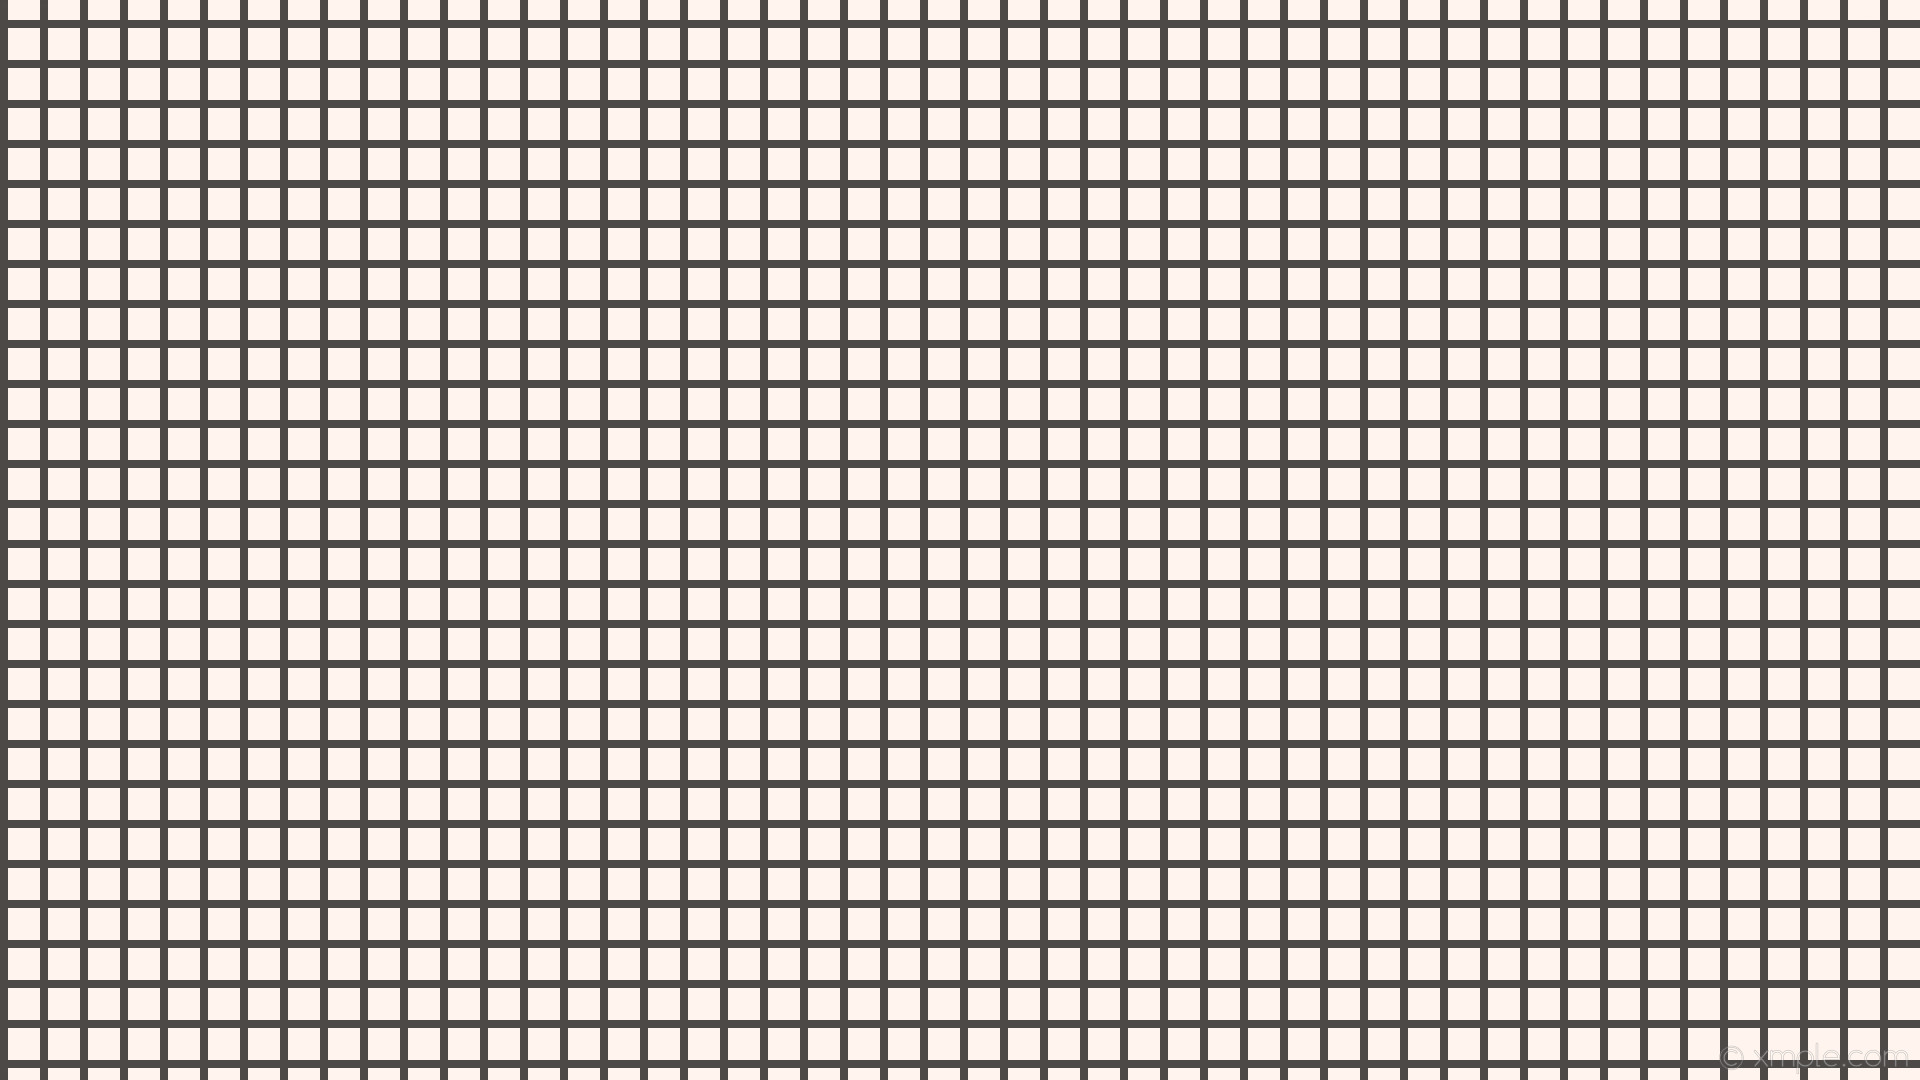 1920x1080 wallpaper graph paper black white grid seashell #fff5ee #000000 0° 8px 40px